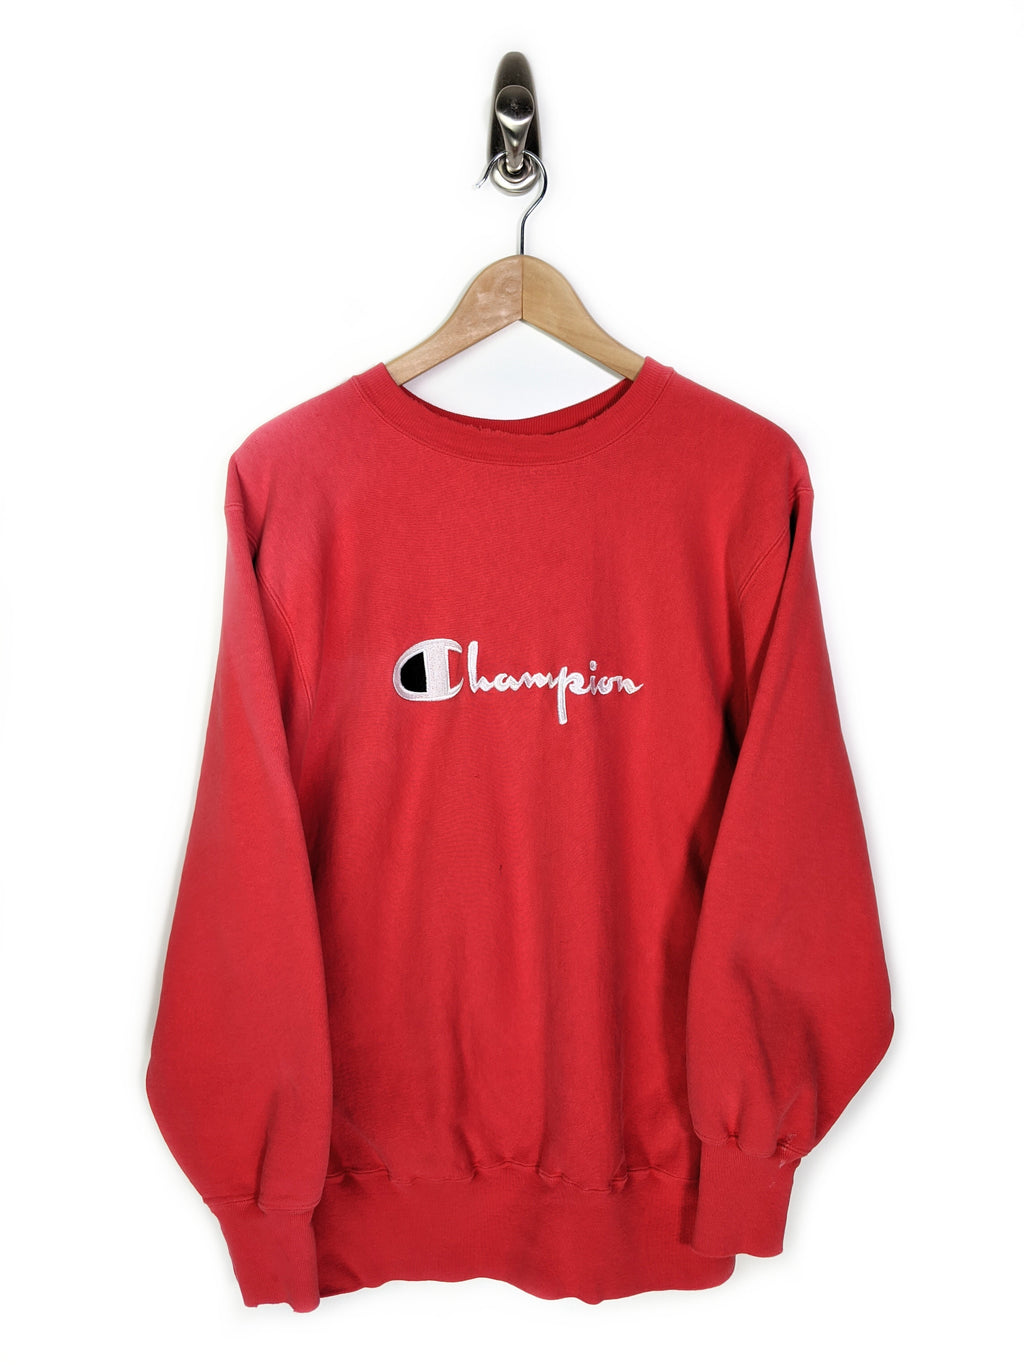 Reverse Weave Champion Sweatshirt (XL)